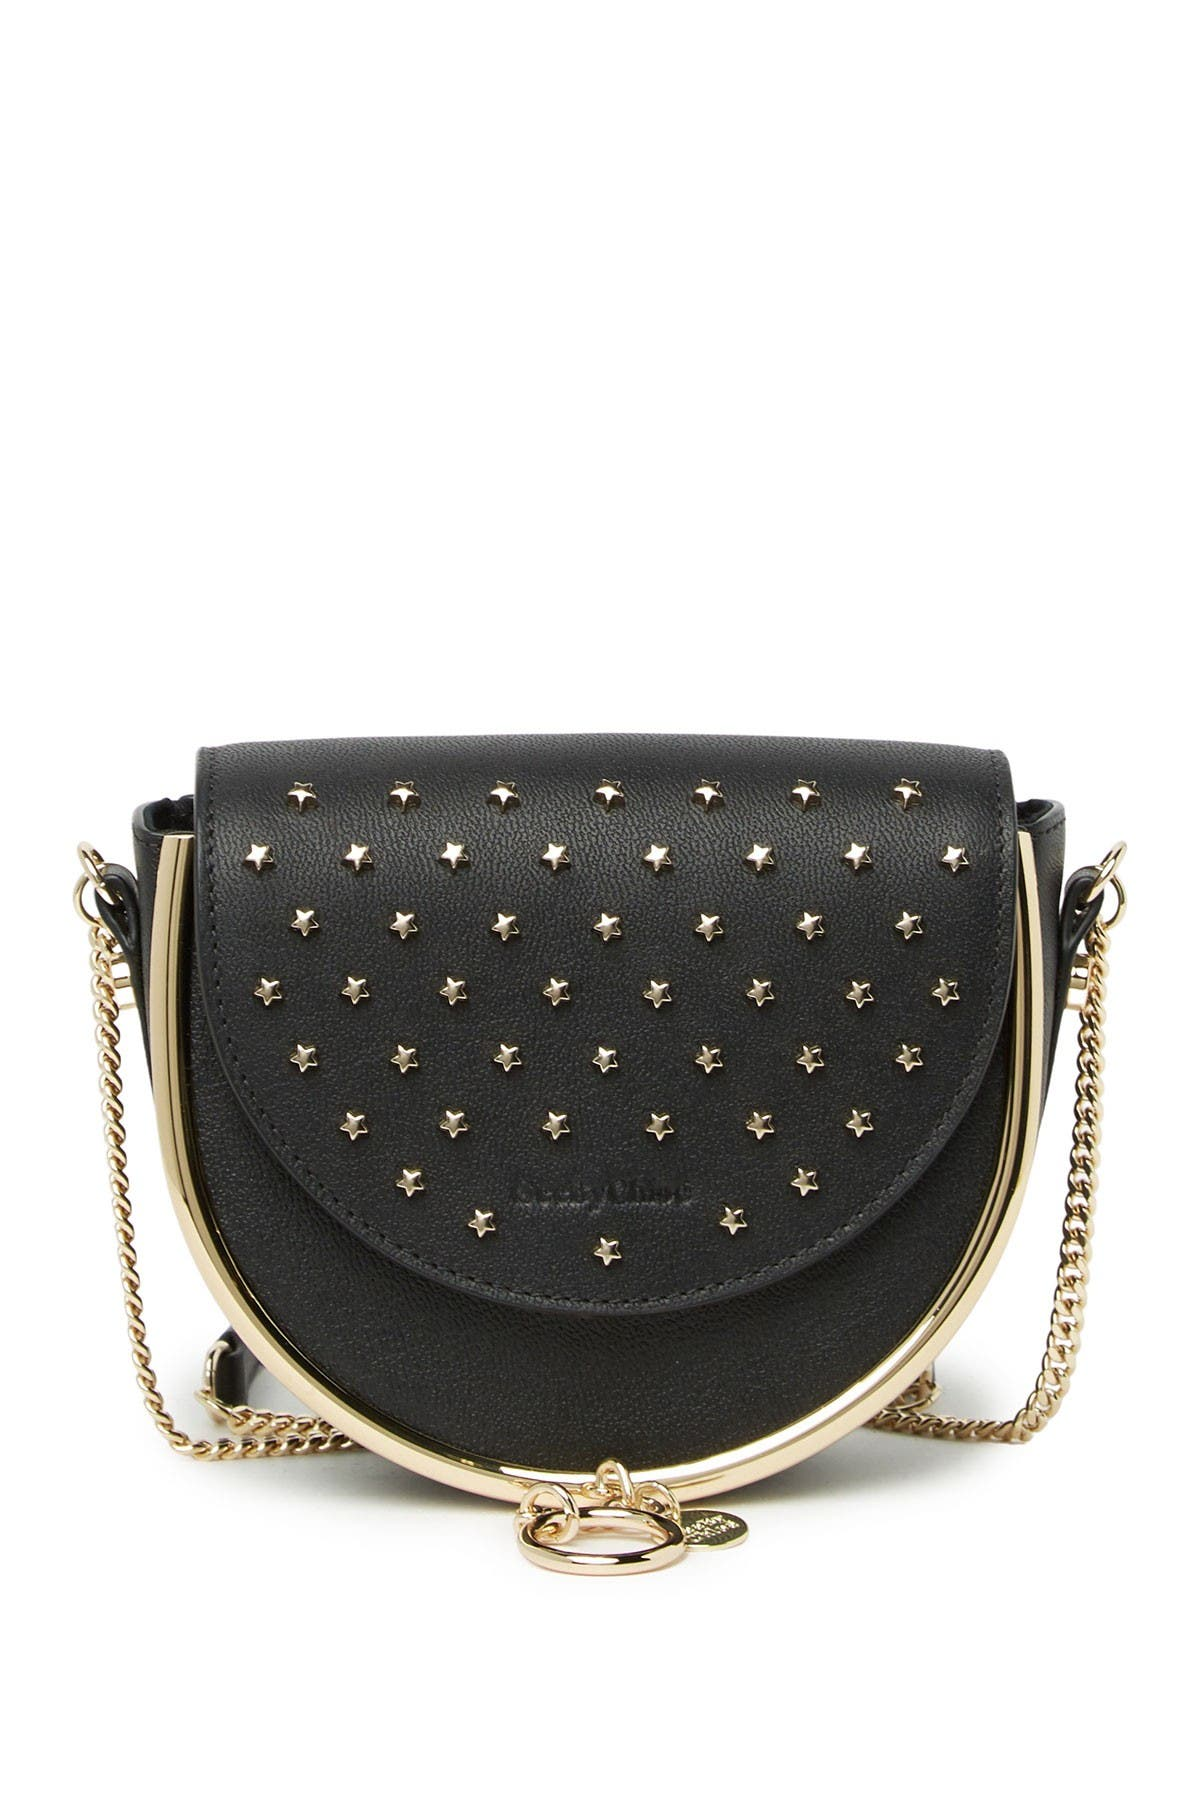 Image of See By Chloe Mady Studded Crossbody Bag